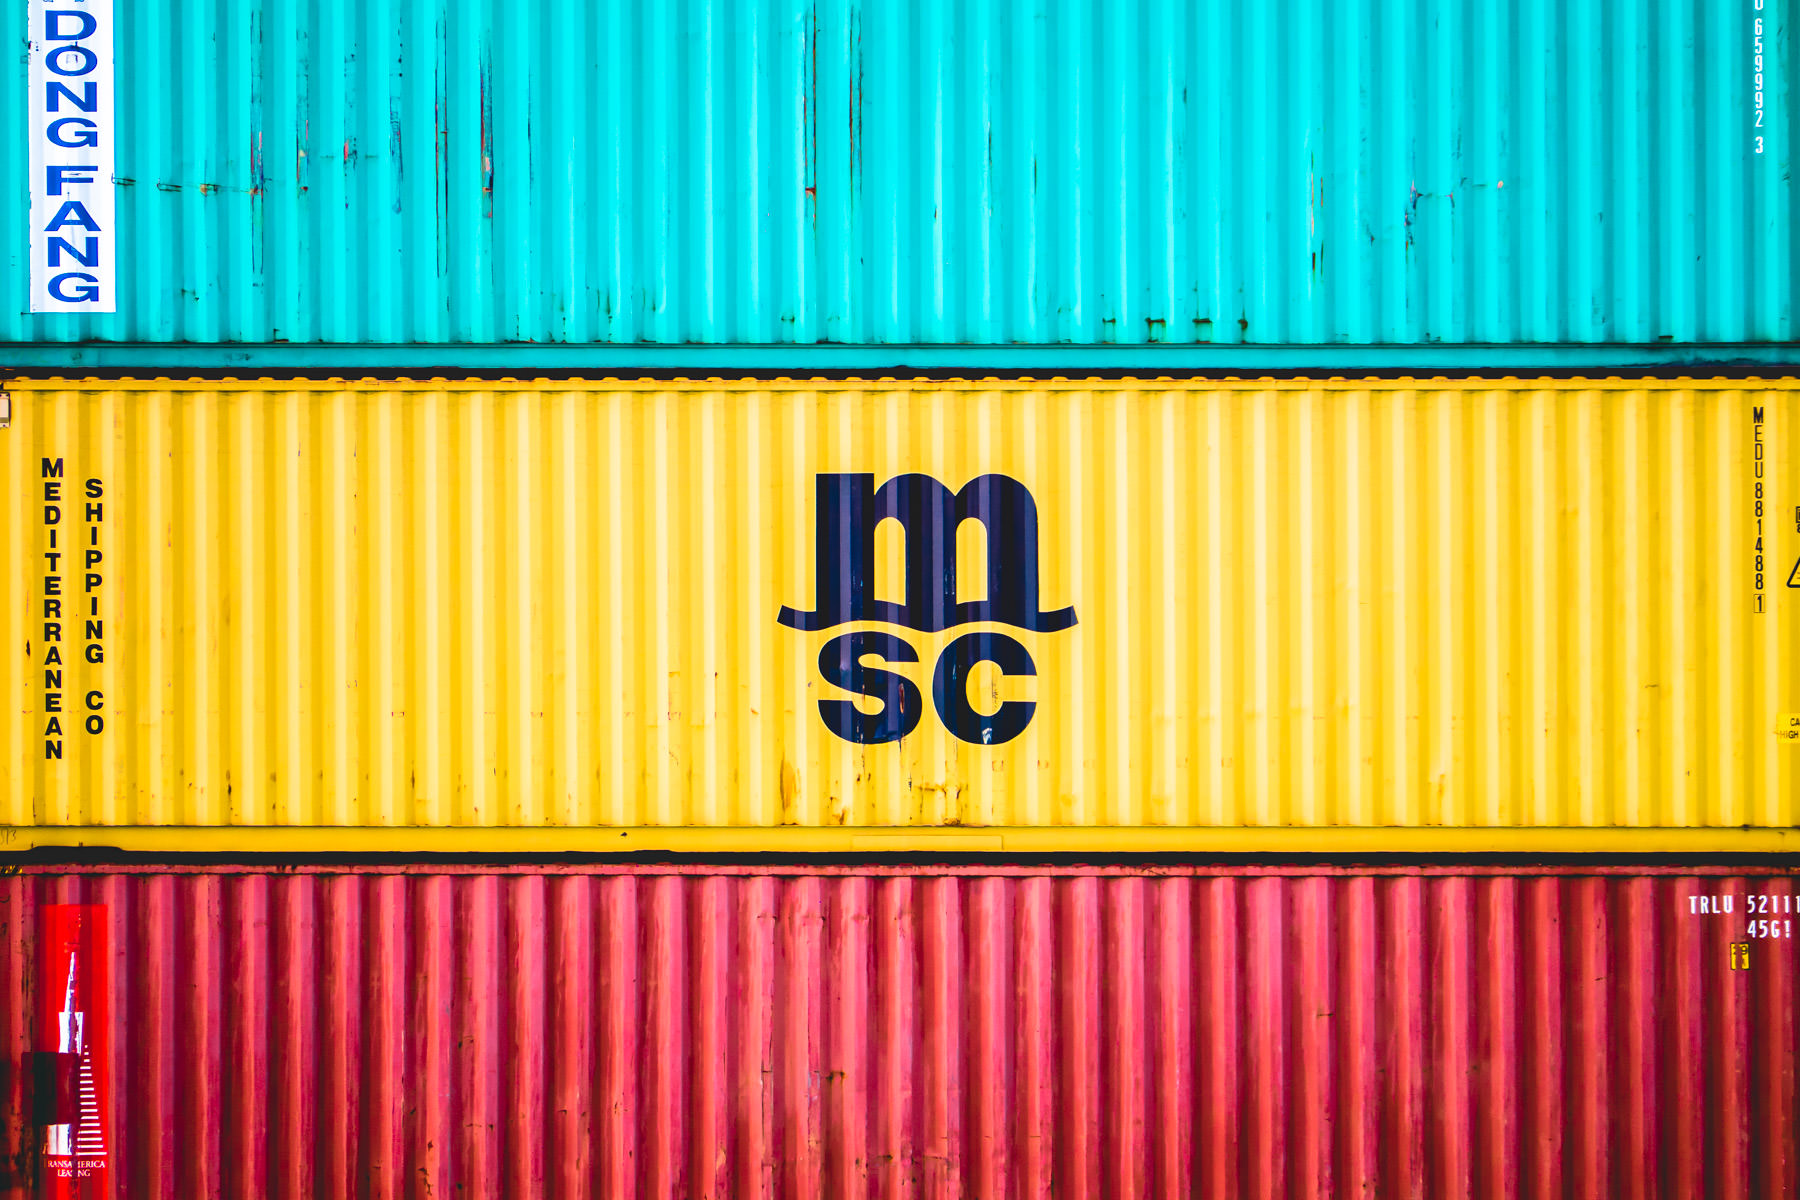 Multi-colored shipping containers of the Mediterranean Shipping Company sit stacked in a container yard in Freeport, Bahamas.